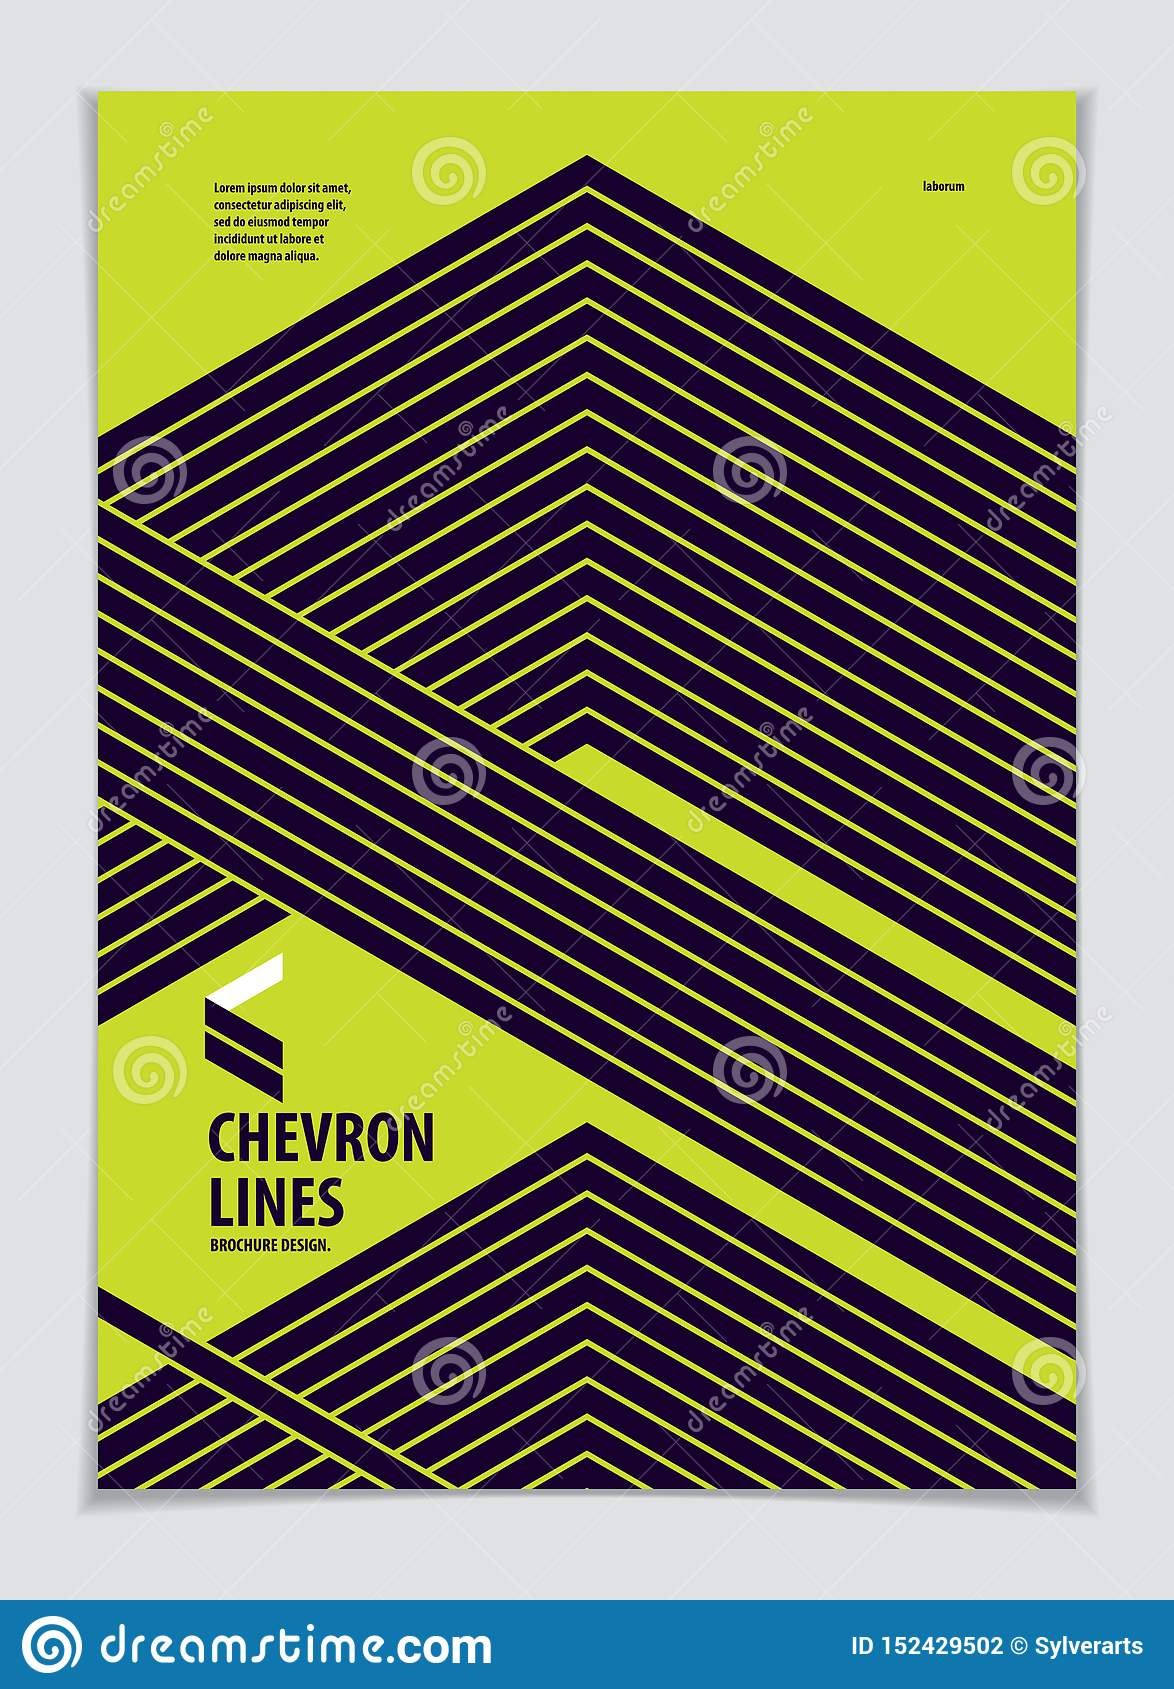 Template for Cover, Placard, Poster, Flyer and Banner Design. Cool geometric vector line background for your design. Minimalistic